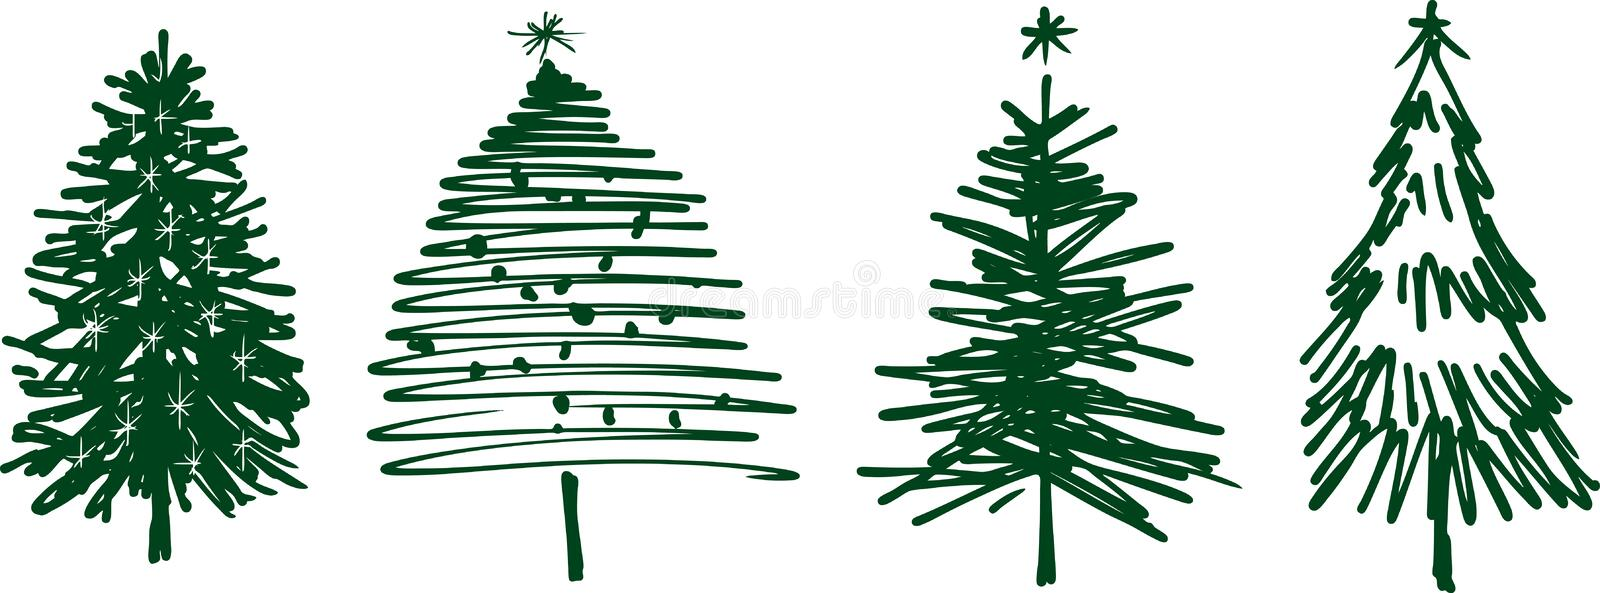 Christmas trees royalty free illustration